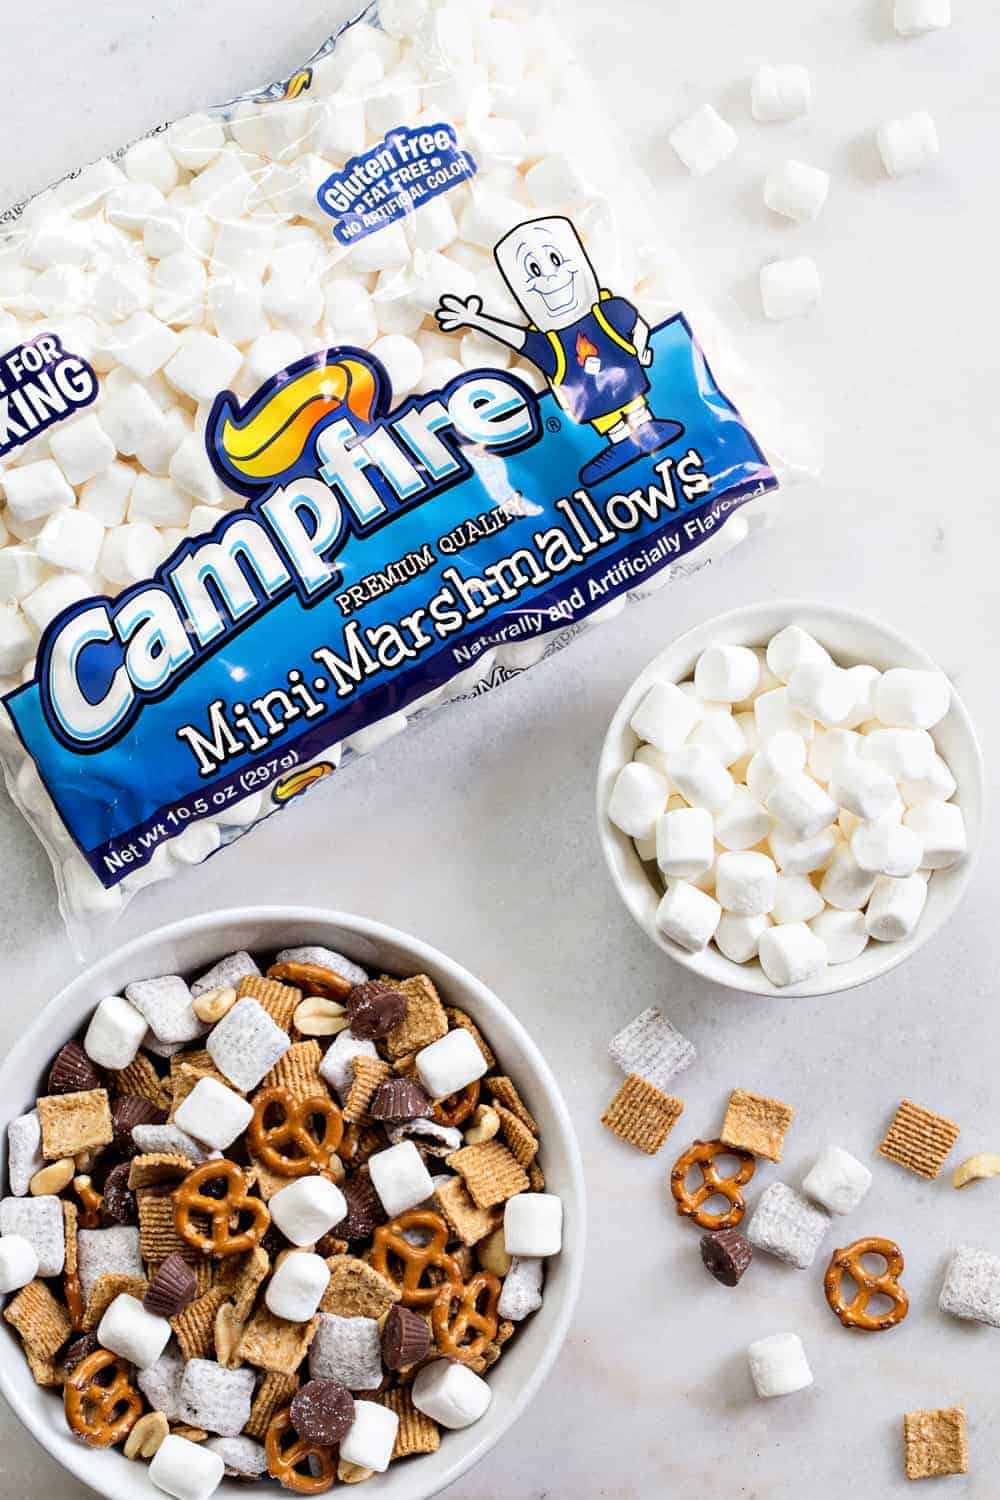 S'mores Snack Mix combines graham cereal, puppy chow, pretzels, peanuts, mini peanut butter cups and marshmallows to create the most amazing snack mix! Simple and totally delicious!